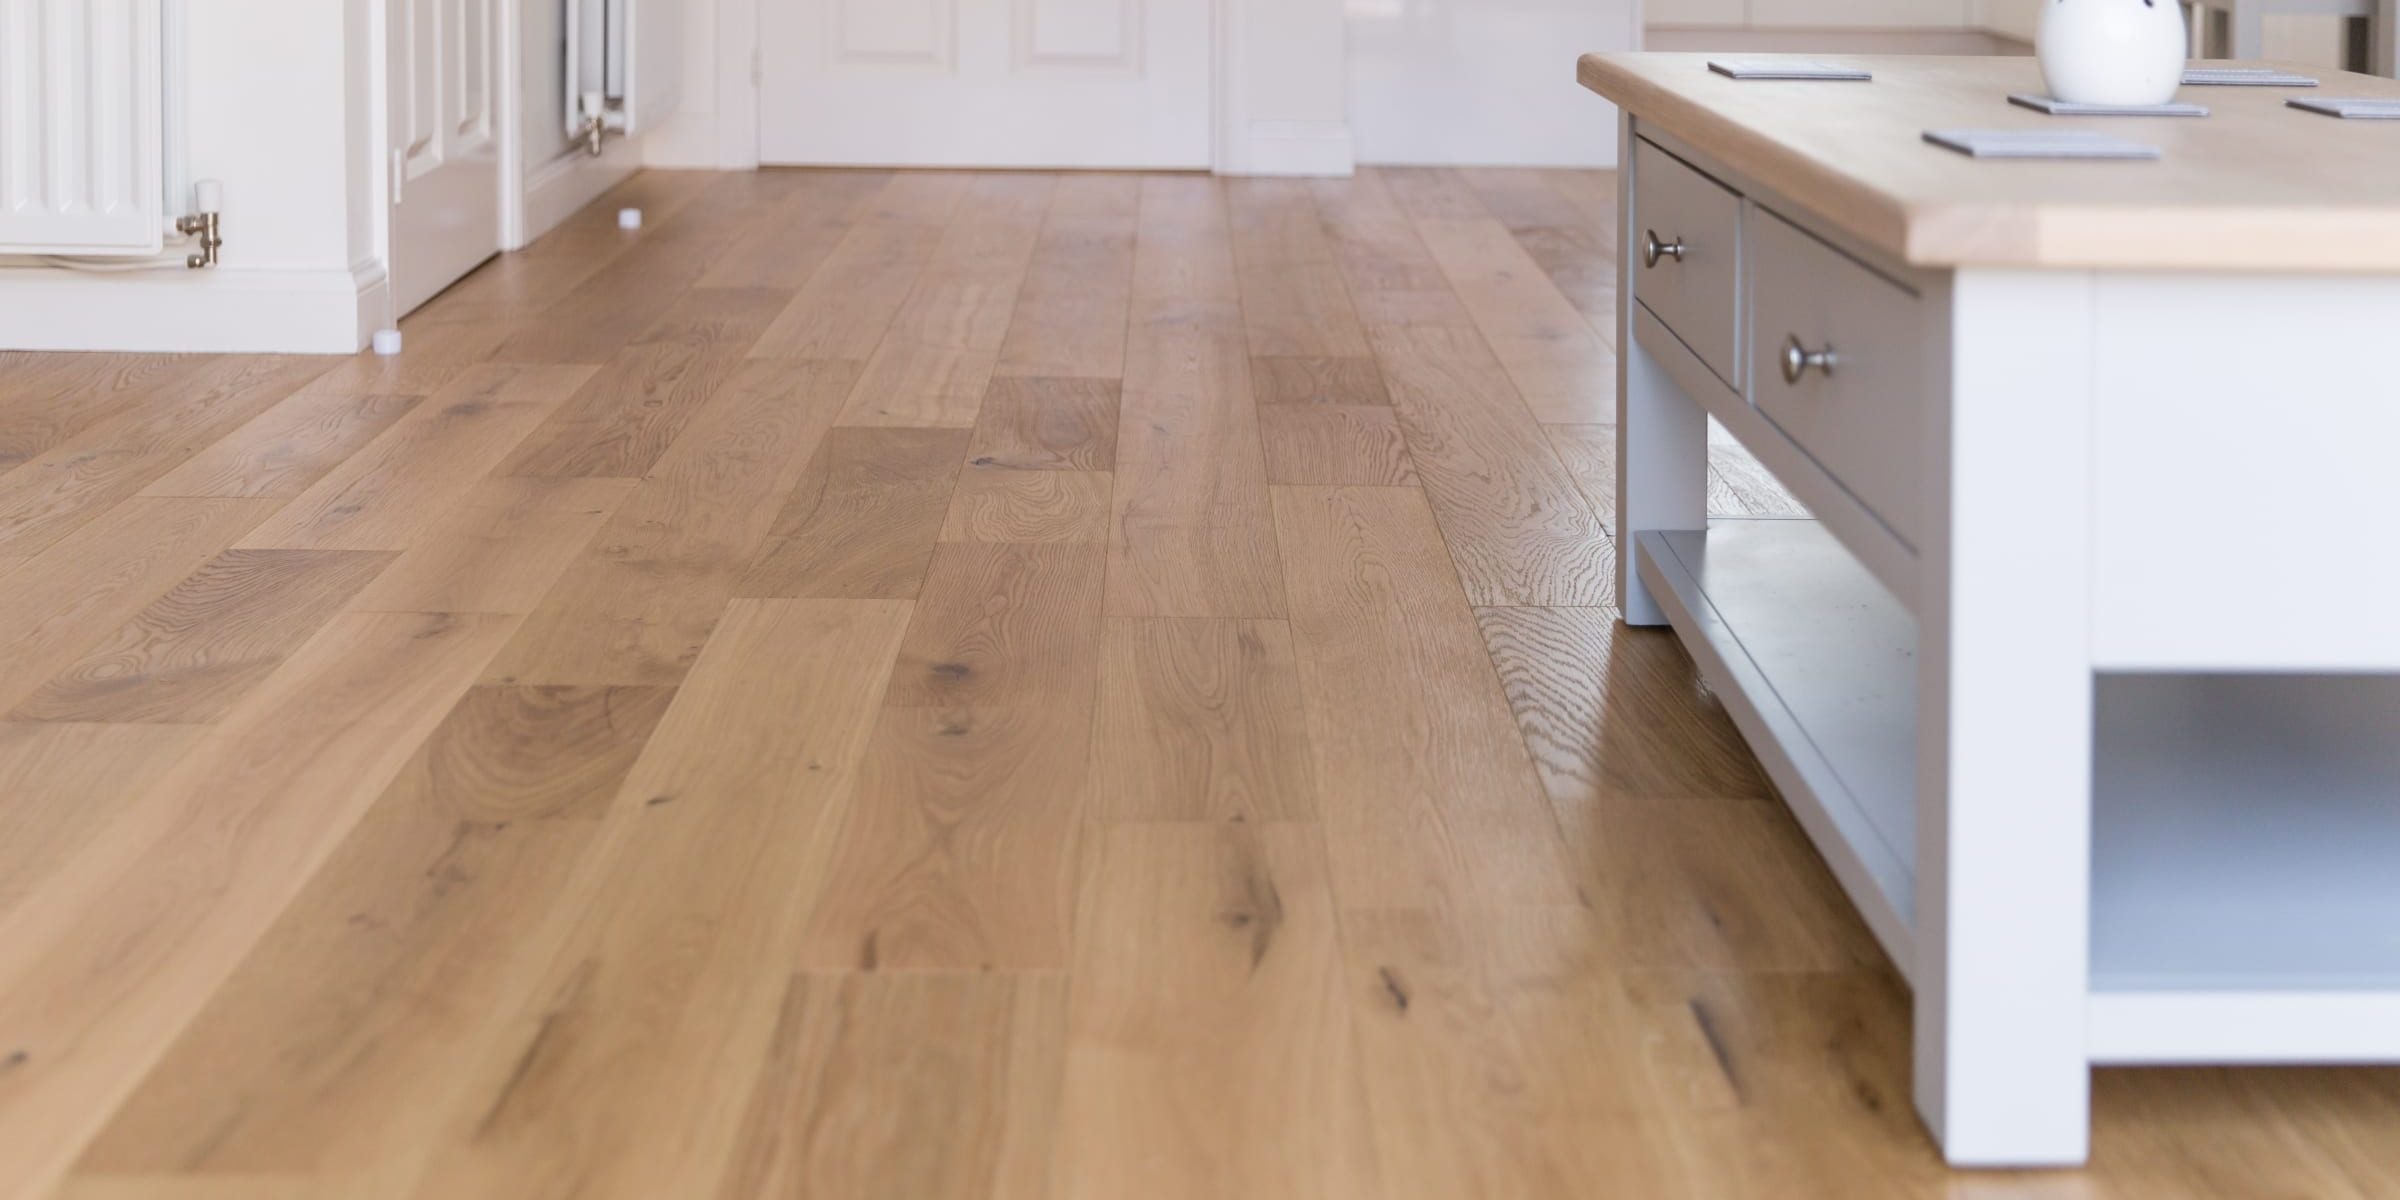 Swindon home with Eiger Petit wood floors 9